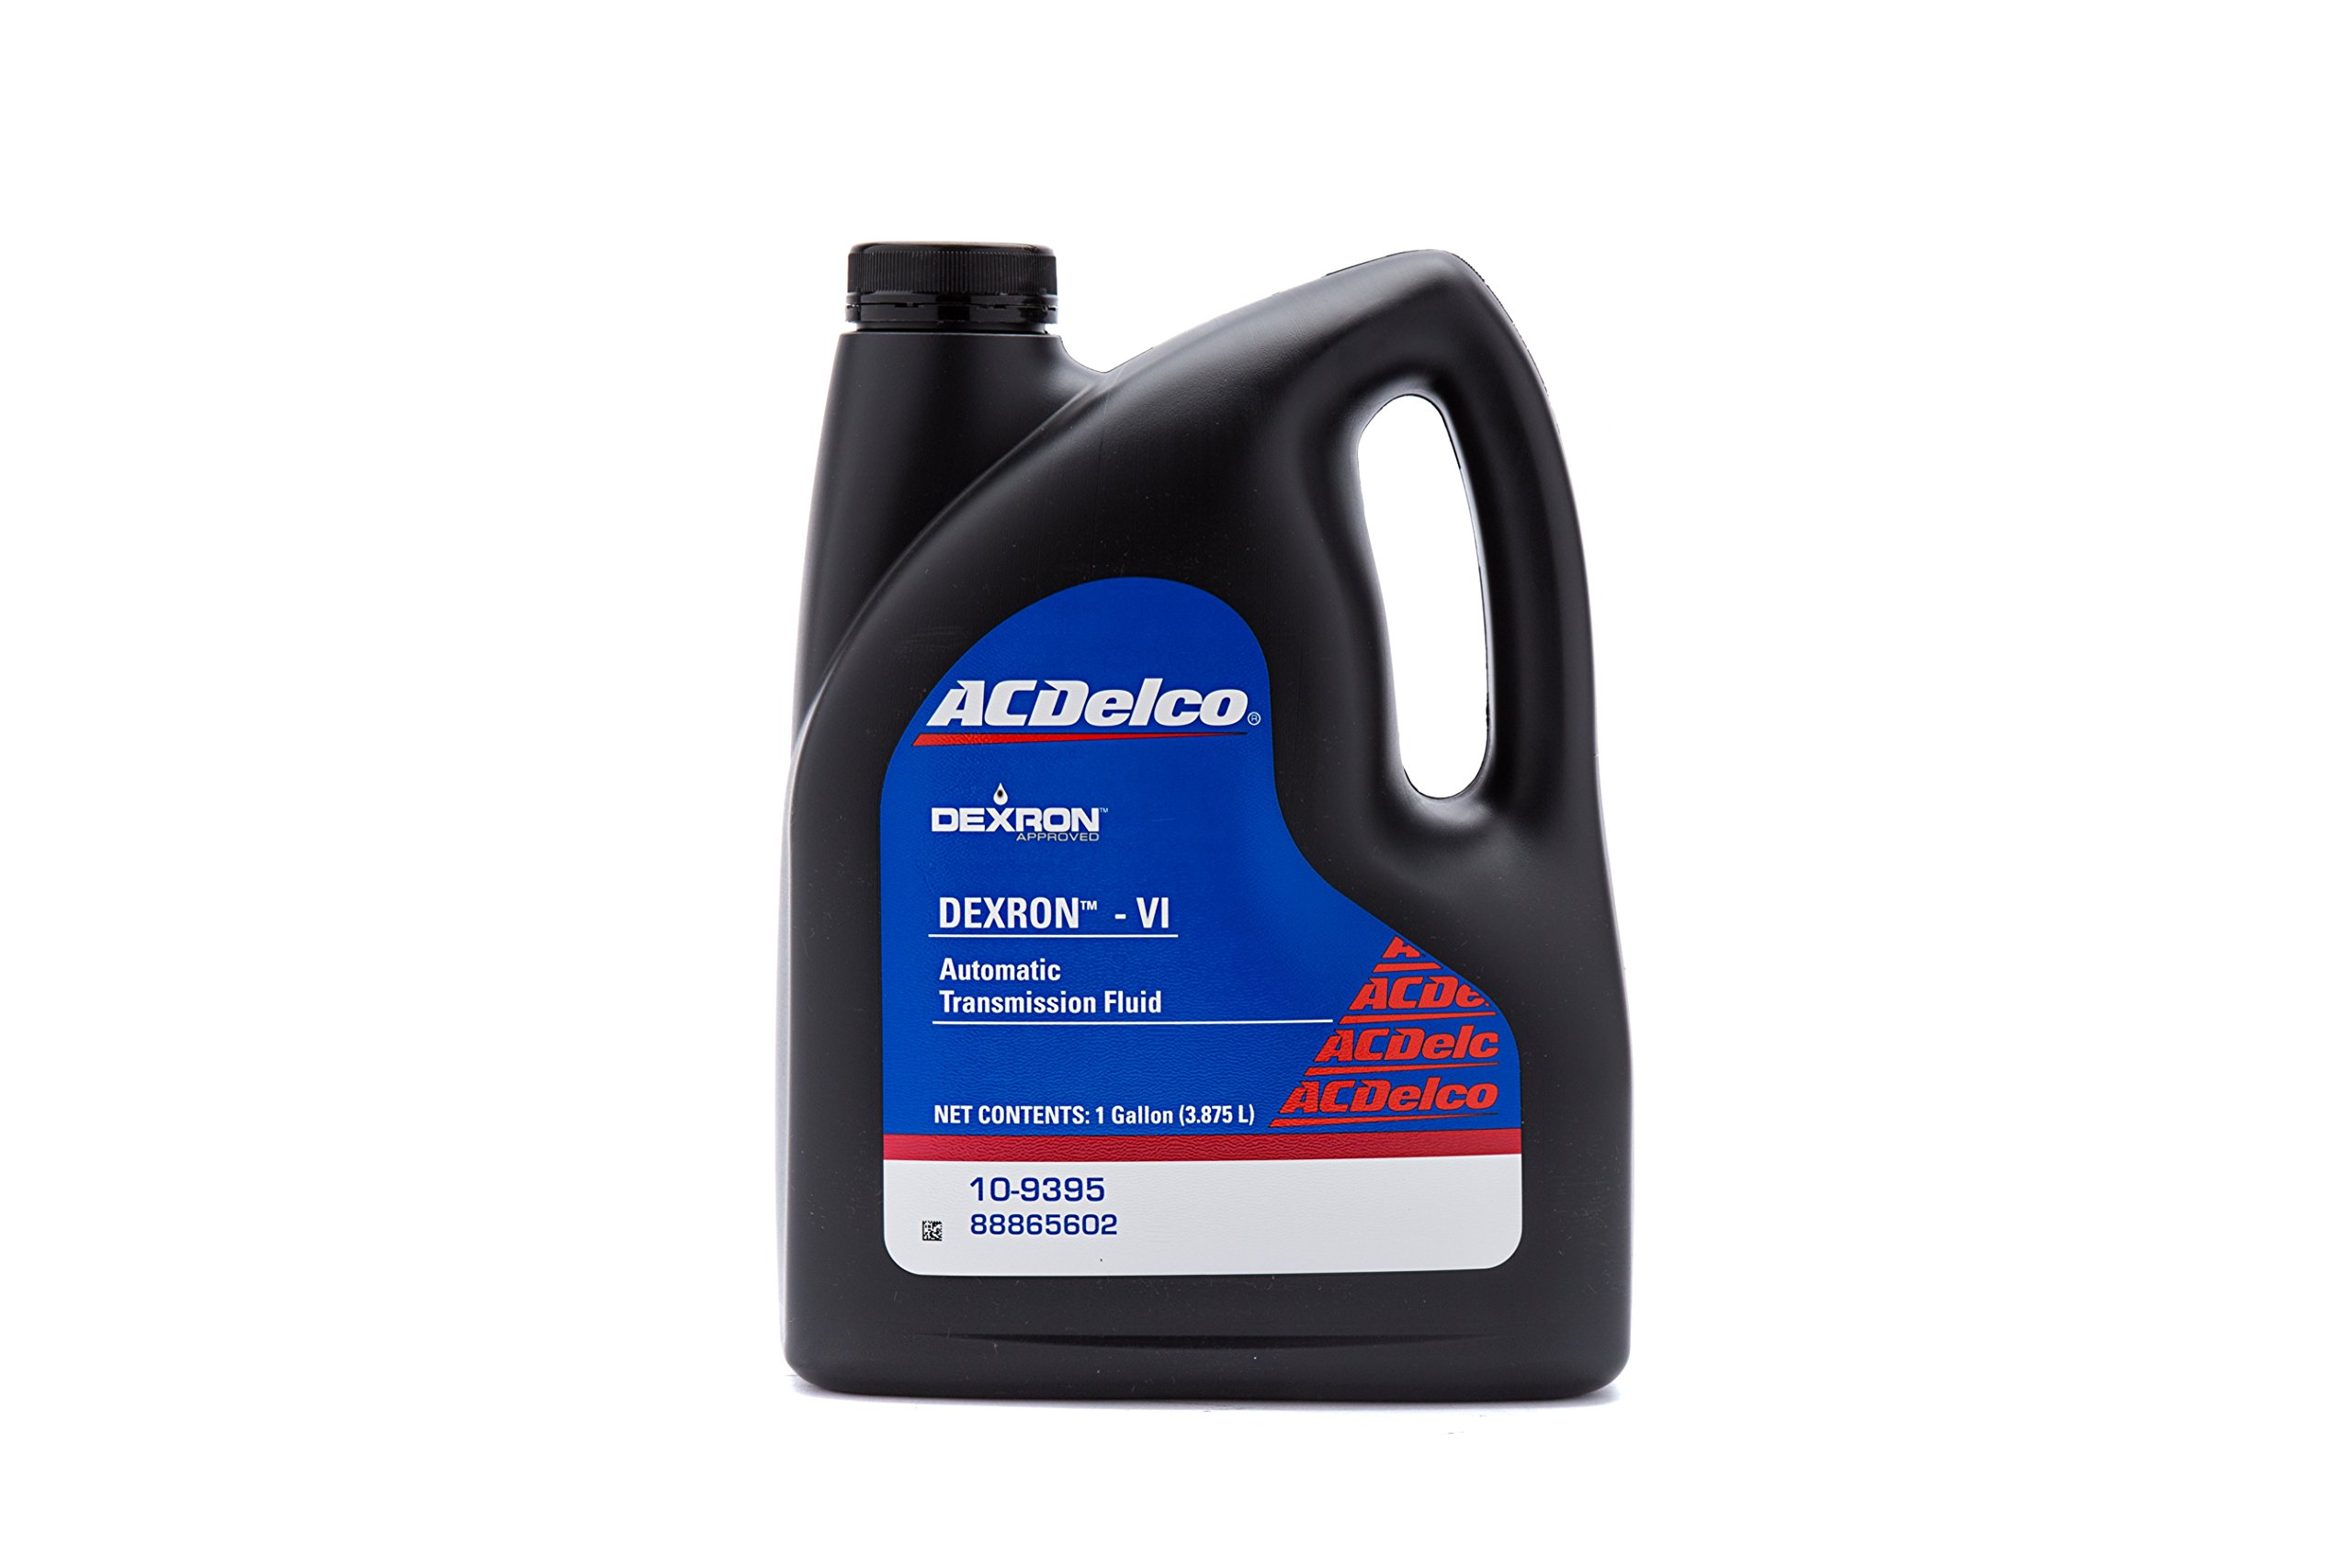 ACDelco 10-9395 Dexron VI Automatic Transmission Fluid - 1 gal